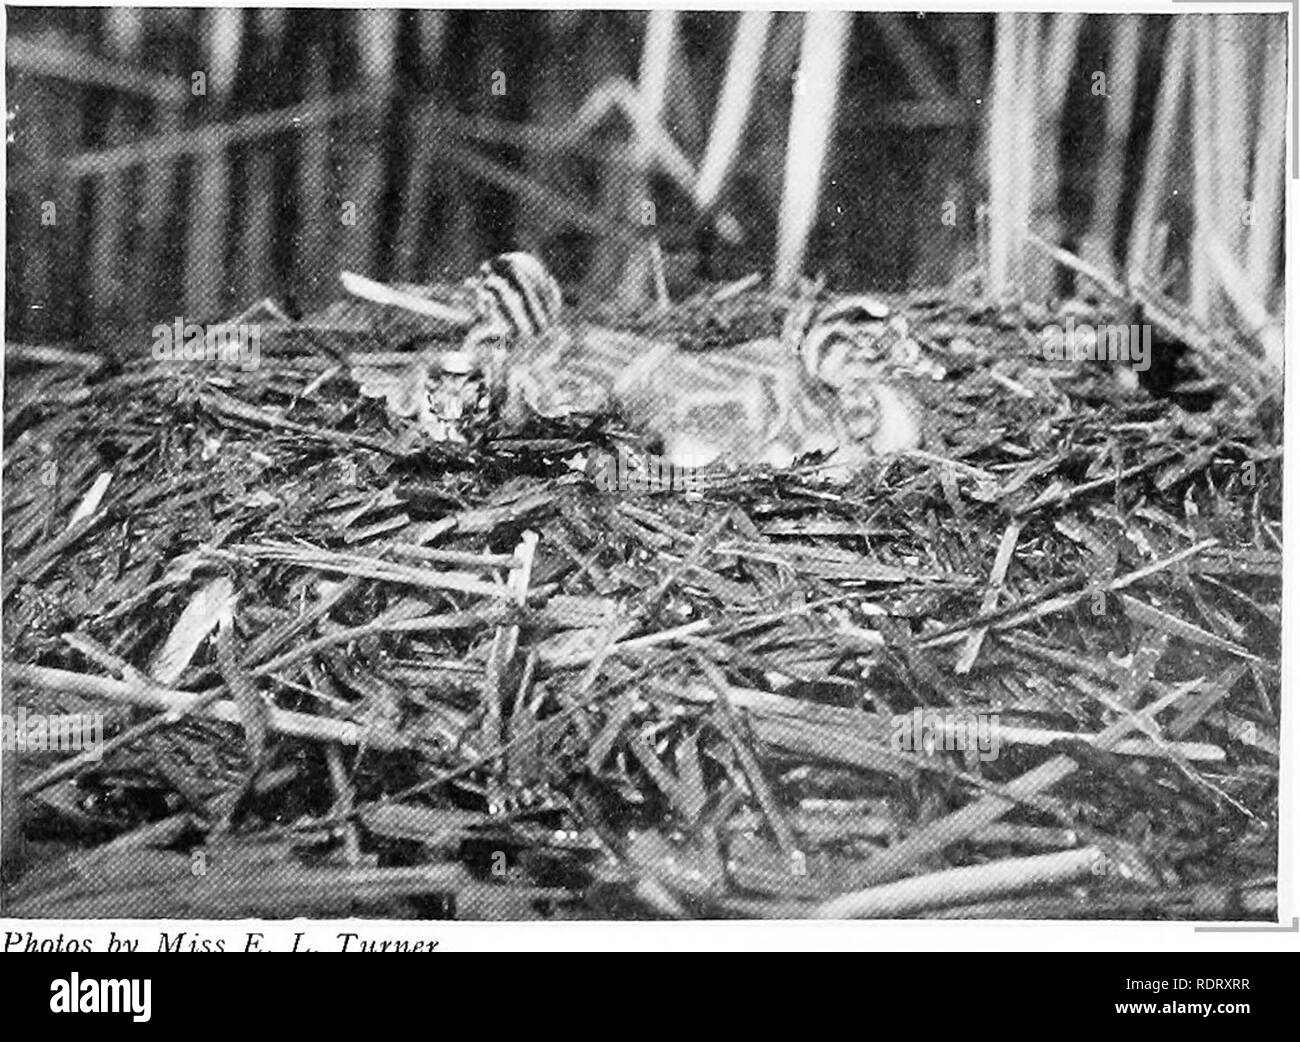 . The infancy of animals. Animals. NESTLING SHORT-EARED OWLS.. M r^ - E. L. Turner. NESTLING GREAT CRESTED GREBES. The nestling owls have transversely baiTed. down, in the grebes it is longitudinally striped. The barred type of down is met with only among the owls. 114]. Please note that these images are extracted from scanned page images that may have been digitally enhanced for readability - coloration and appearance of these illustrations may not perfectly resemble the original work.. Pycraft, W. P. , (William Plane), b. 1868. New York, H. Holt and Company - Stock Image